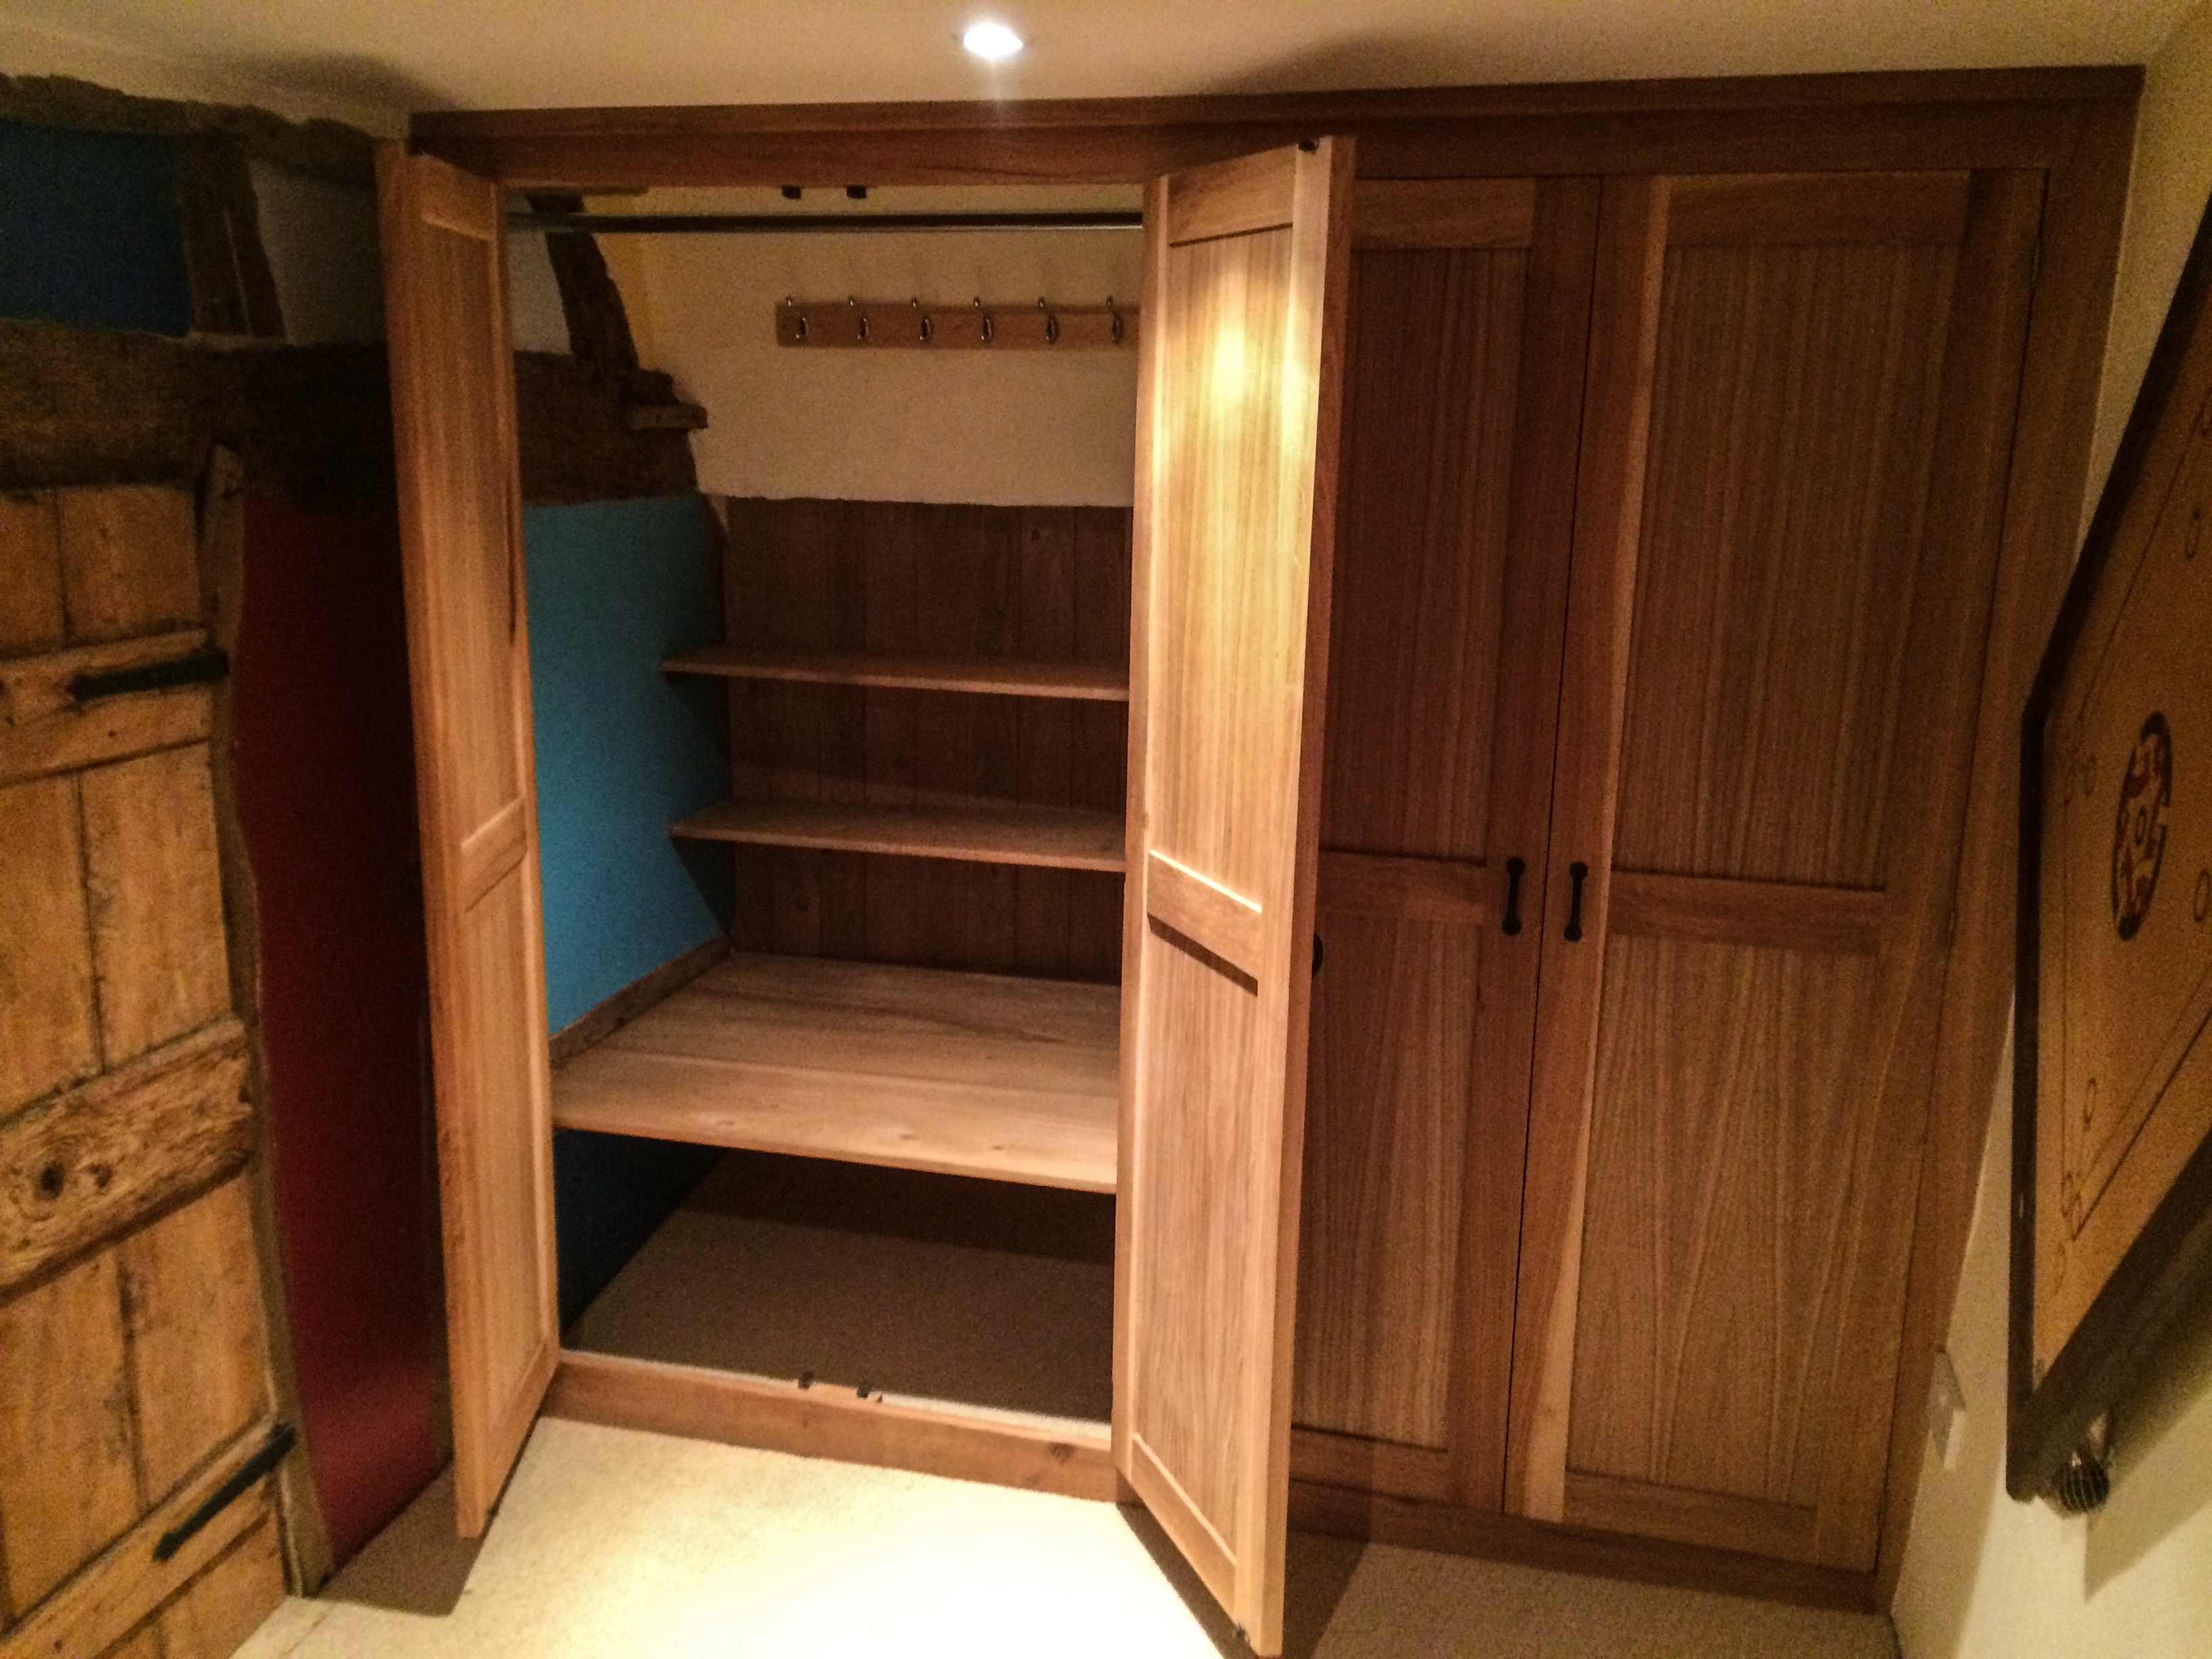 Best 25 Solid Oak Wardrobe Ideas On Pinterest Pertaining To Solid Wood Built In Wardrobes (View 10 of 15)